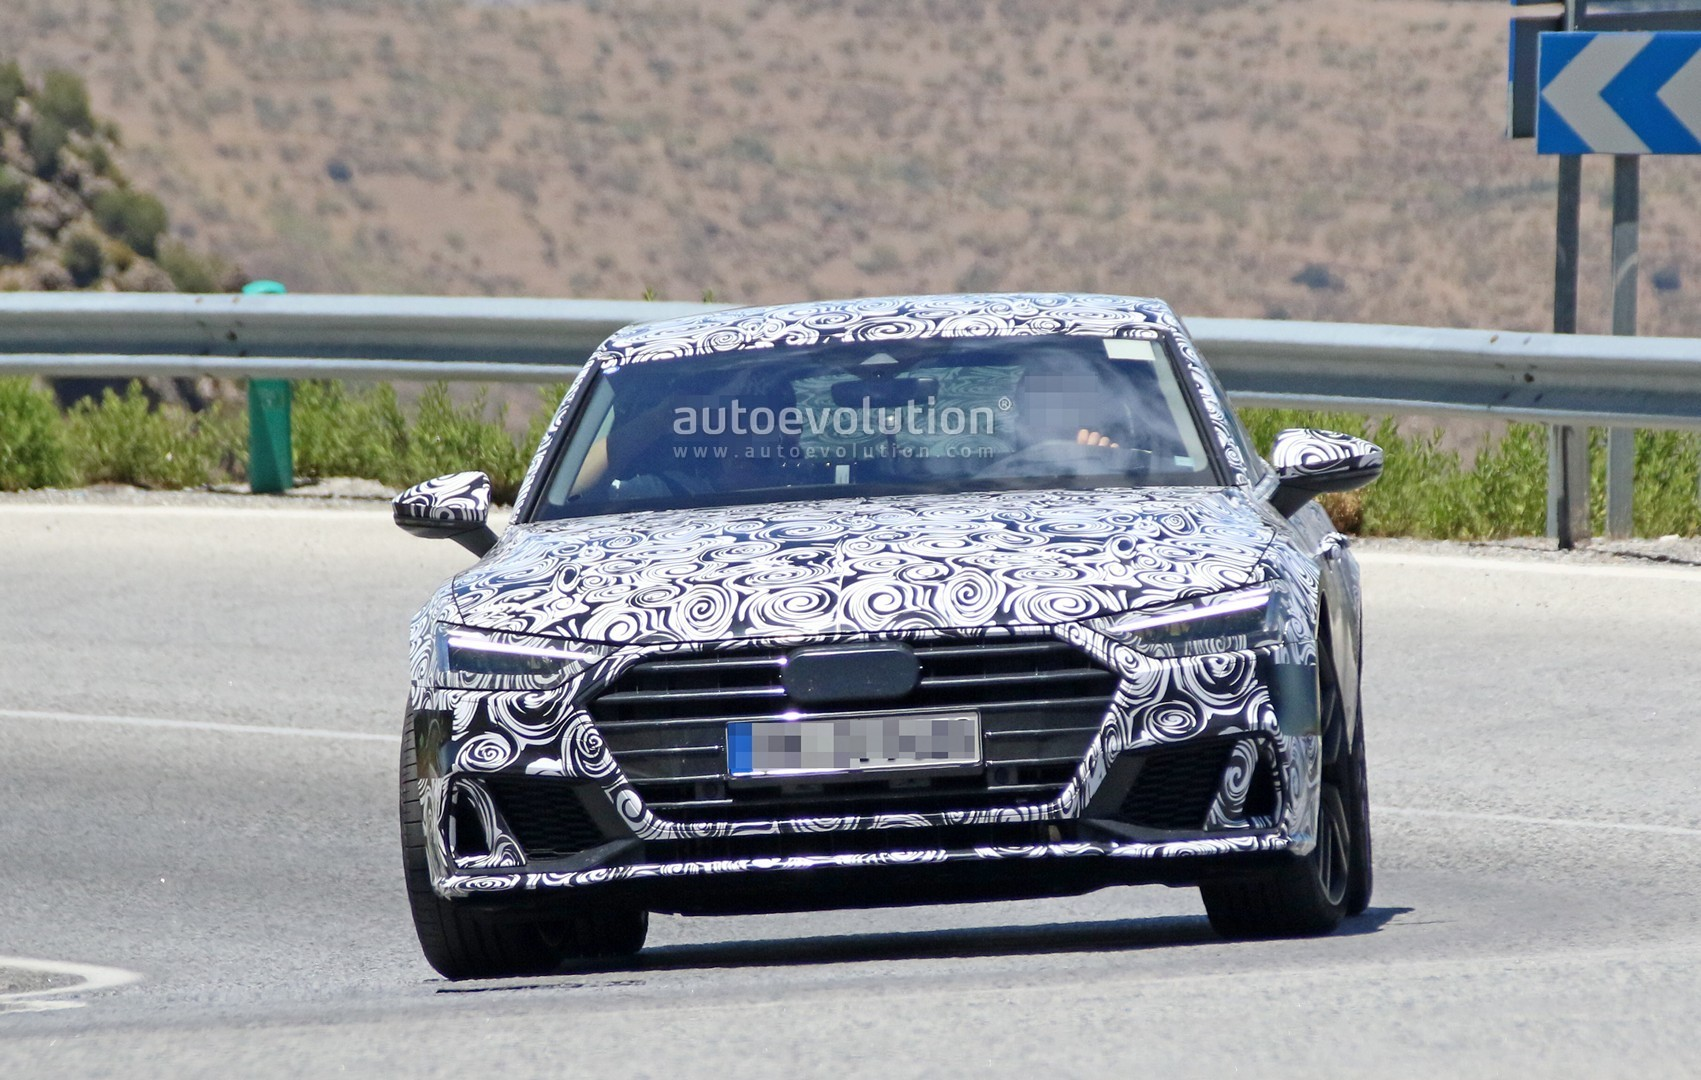 2017 - [Audi] A7 Sportback II - Page 4 2019-audi-s7-spied-in-detail-looks-ready-to-downsize-to-29-tfsi_2